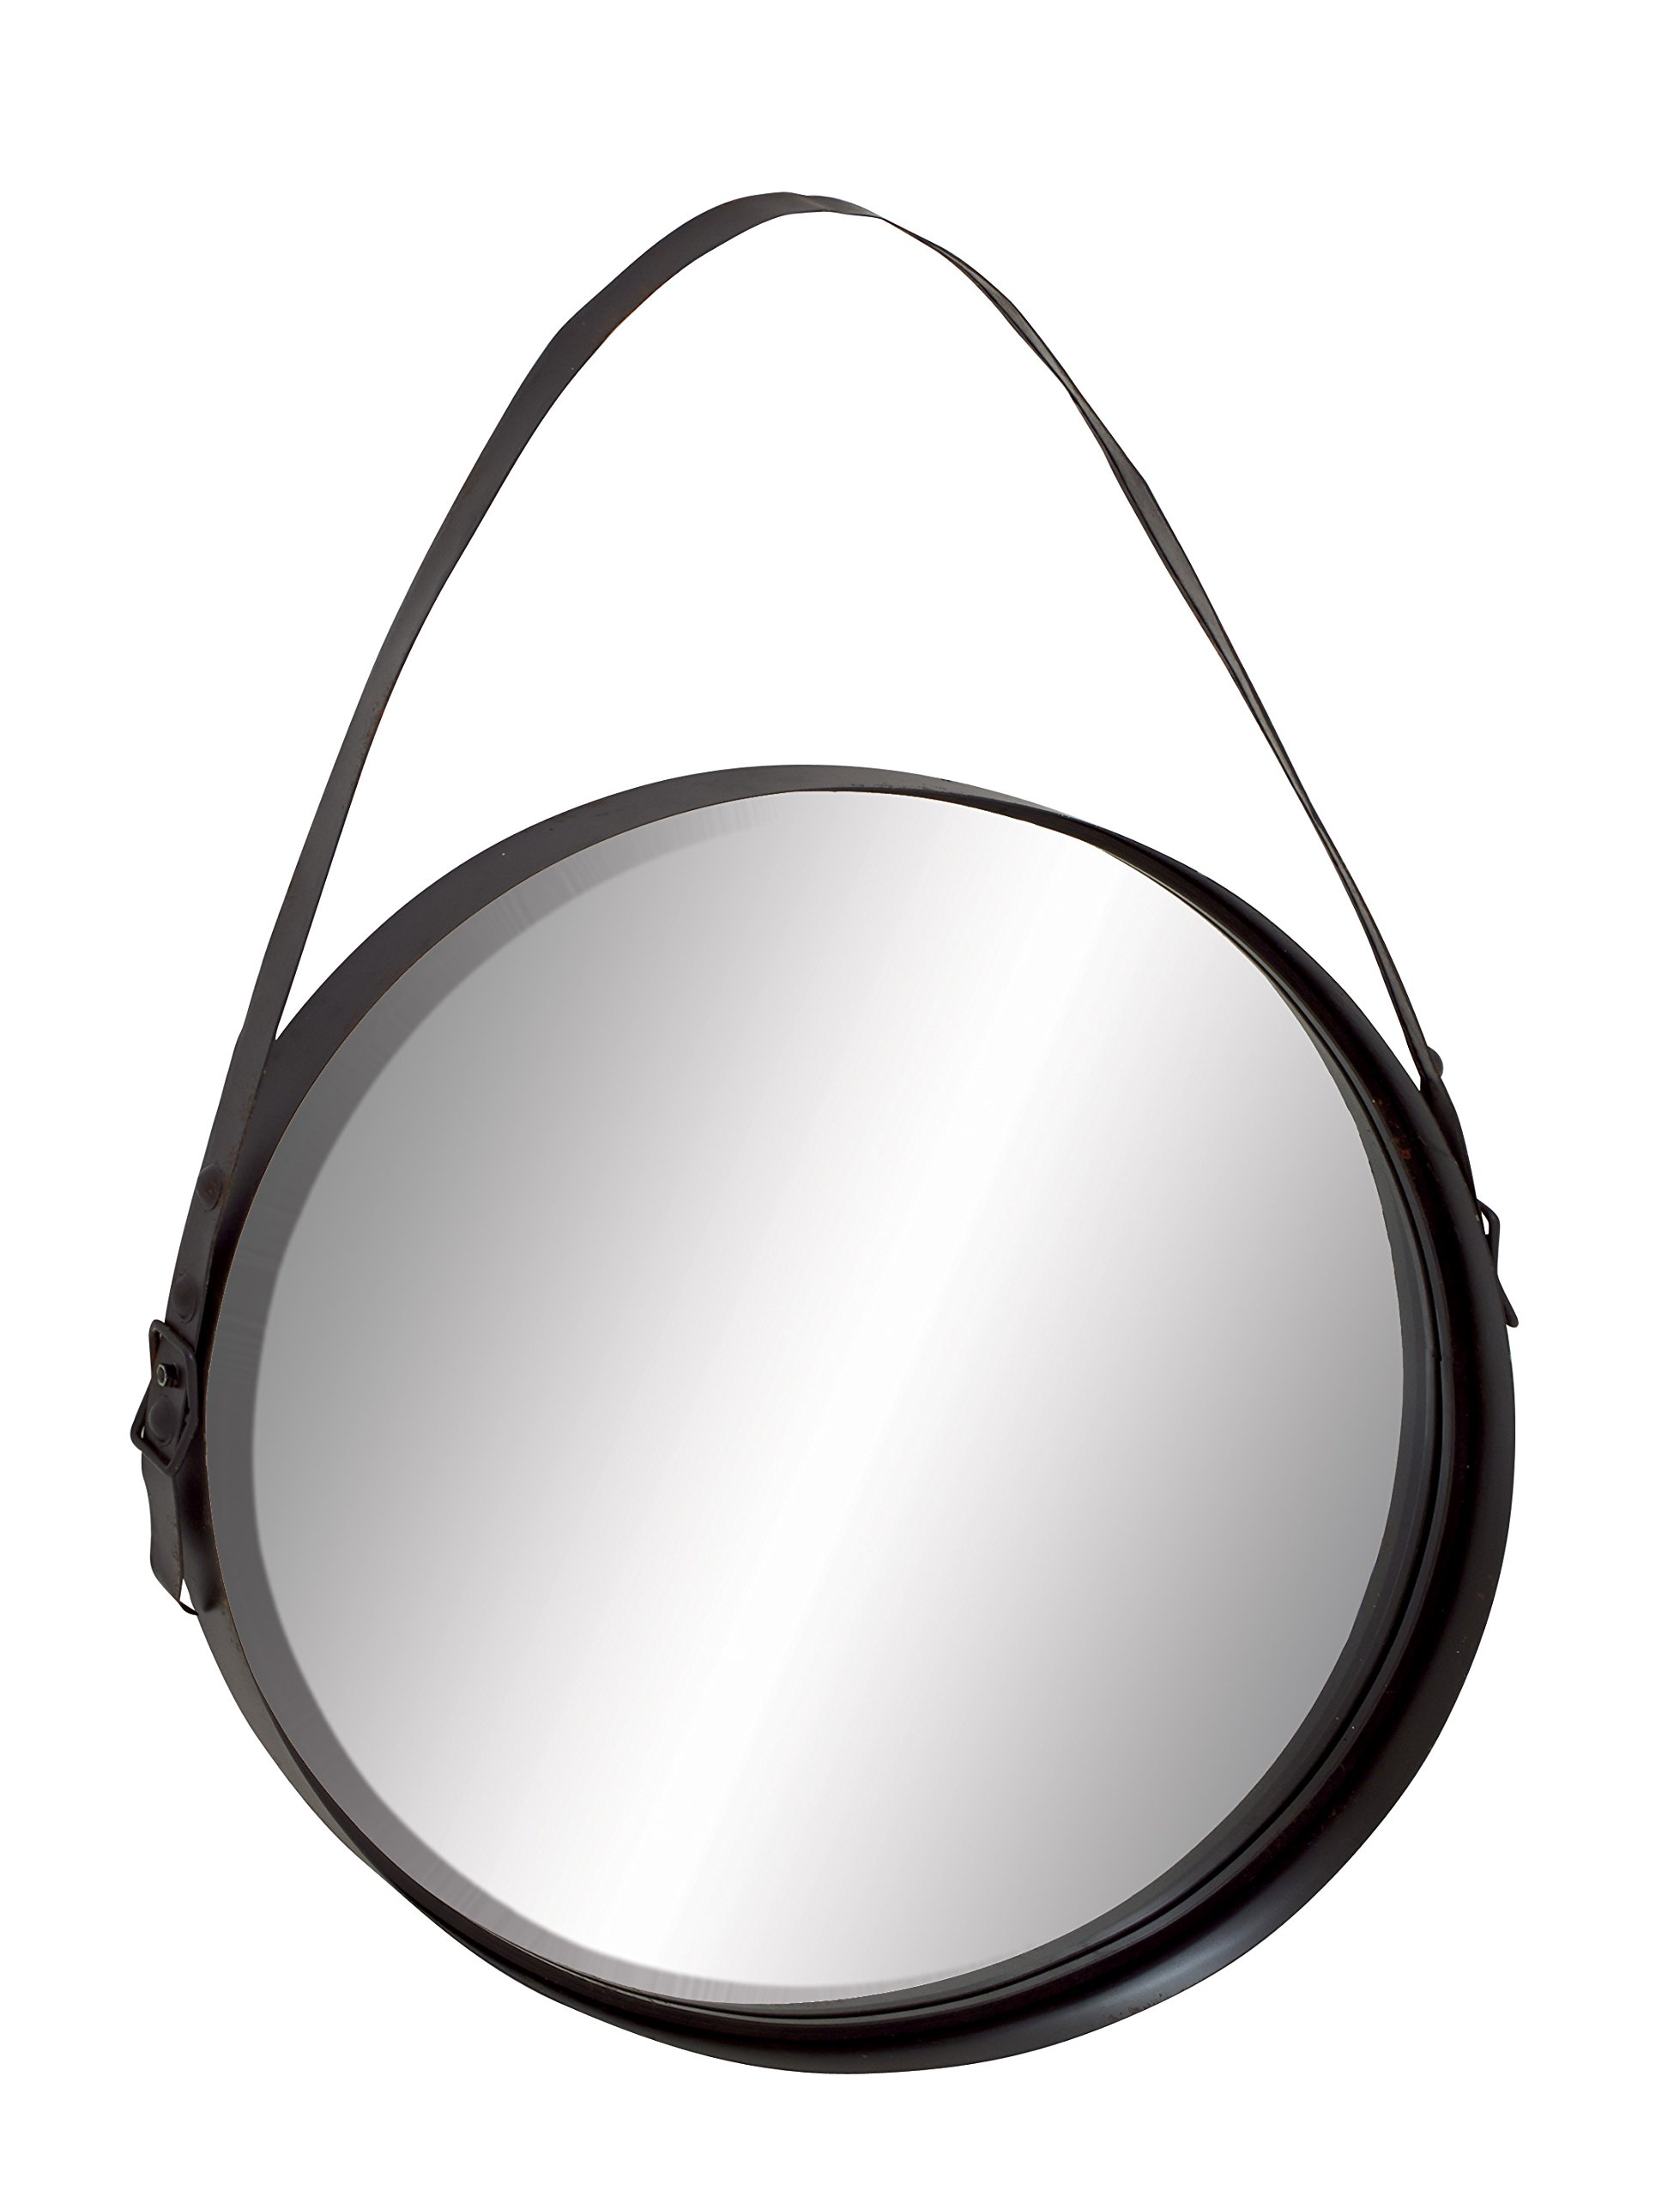 Benzara Completely Lovely Metal Wall Mirror - The product is imported Benzarra Item Number - 20291 The UPC value is 837303182115 - bathroom-mirrors, bathroom-accessories, bathroom - 71fBxvECSqL -